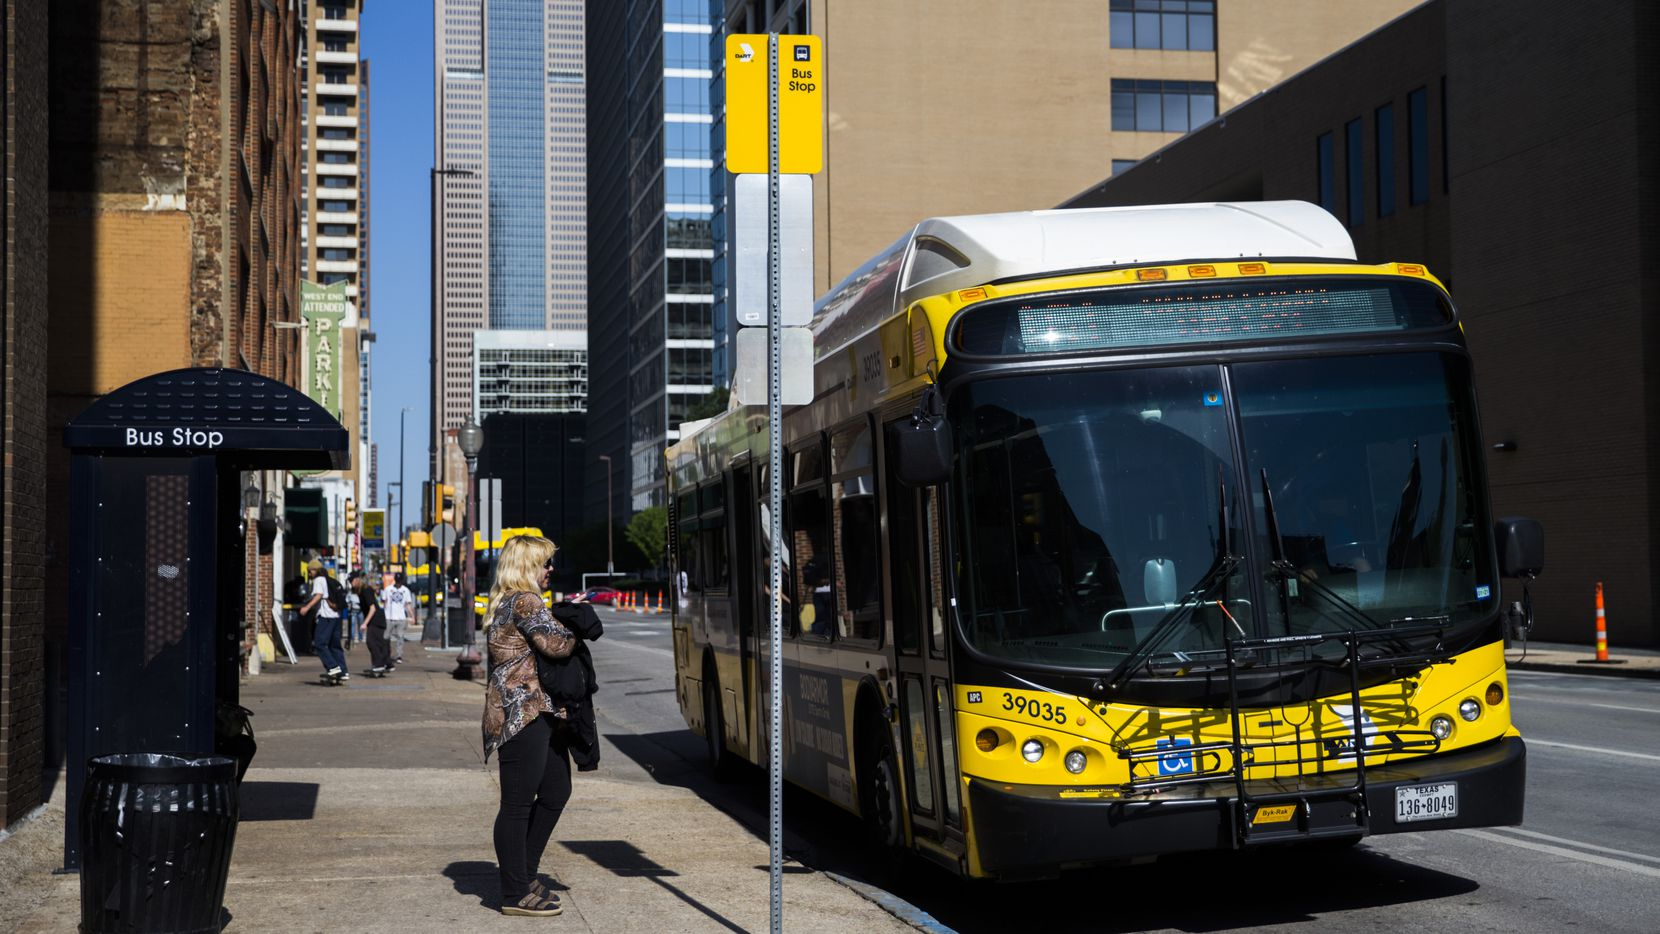 A passenger waits for a DART bus in this file photo. A bus driver narrowly avoided a stray bullet in Oak Cliff on Tuesday.